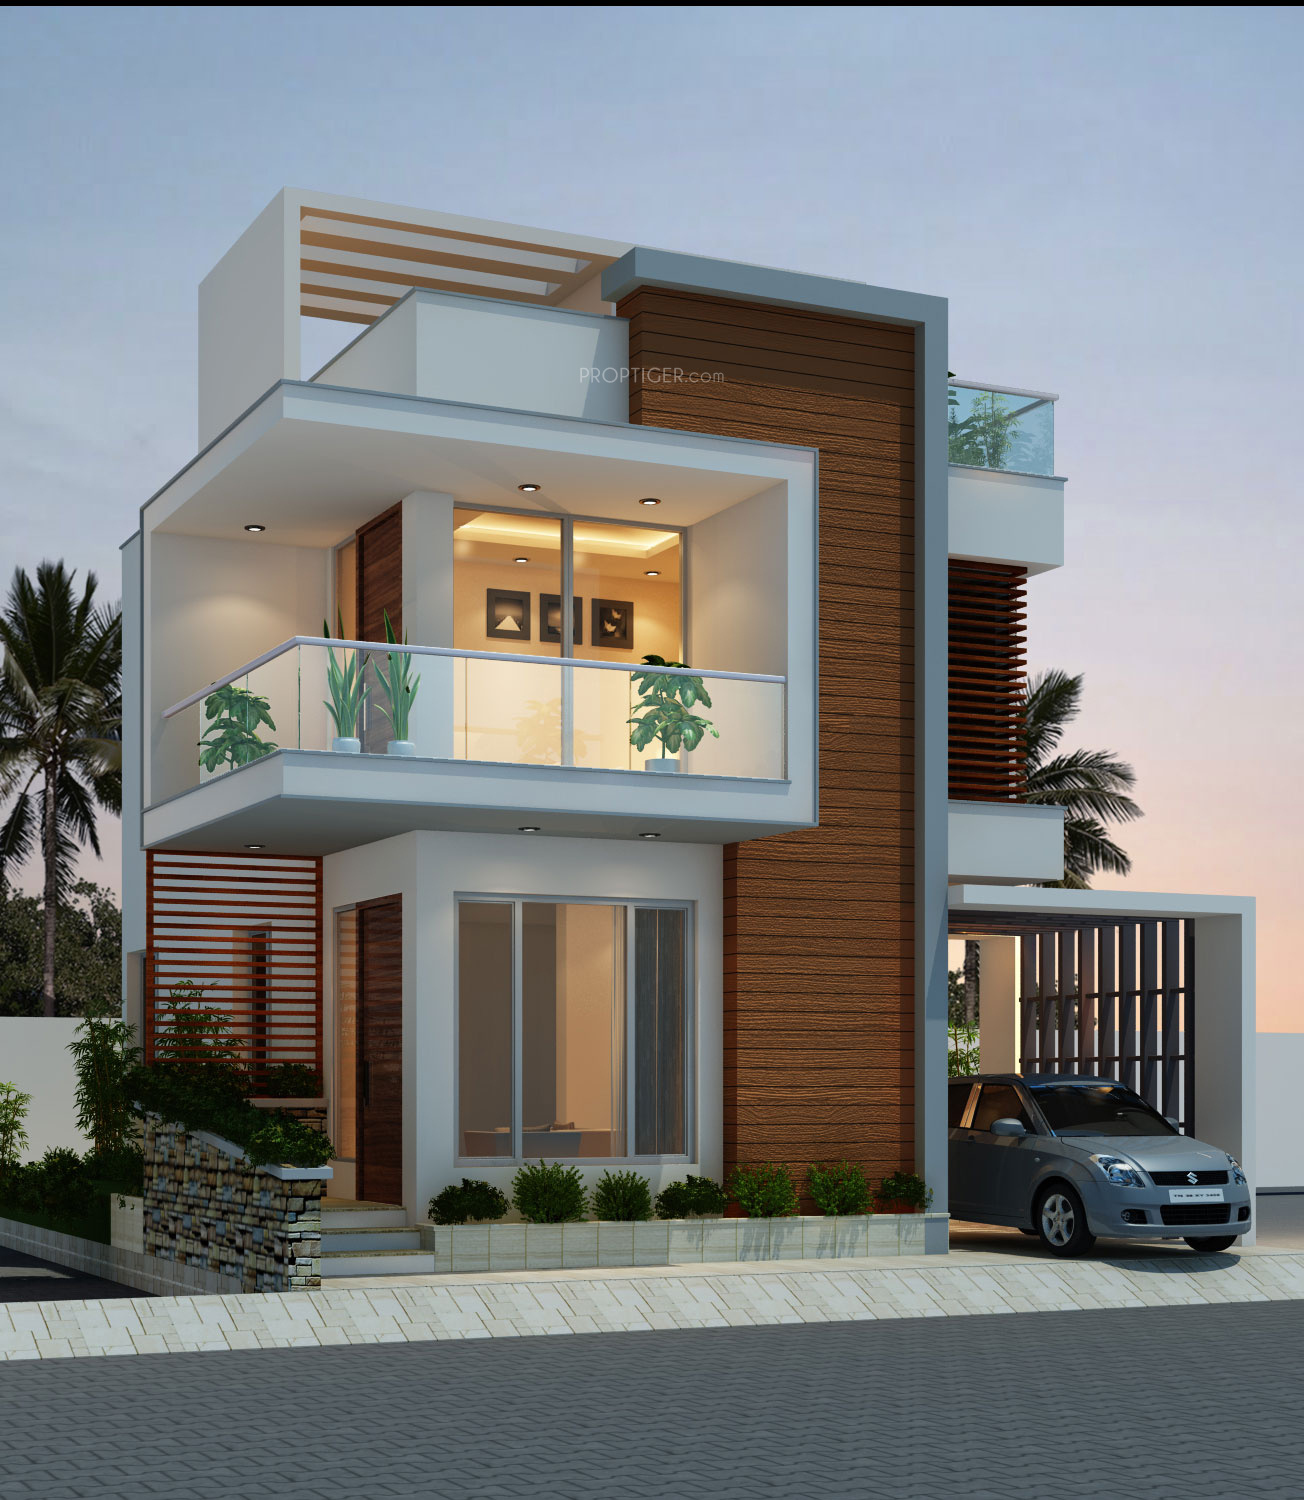 Headway fortune residency villa in perungalathur chennai for House elevation photos architecture